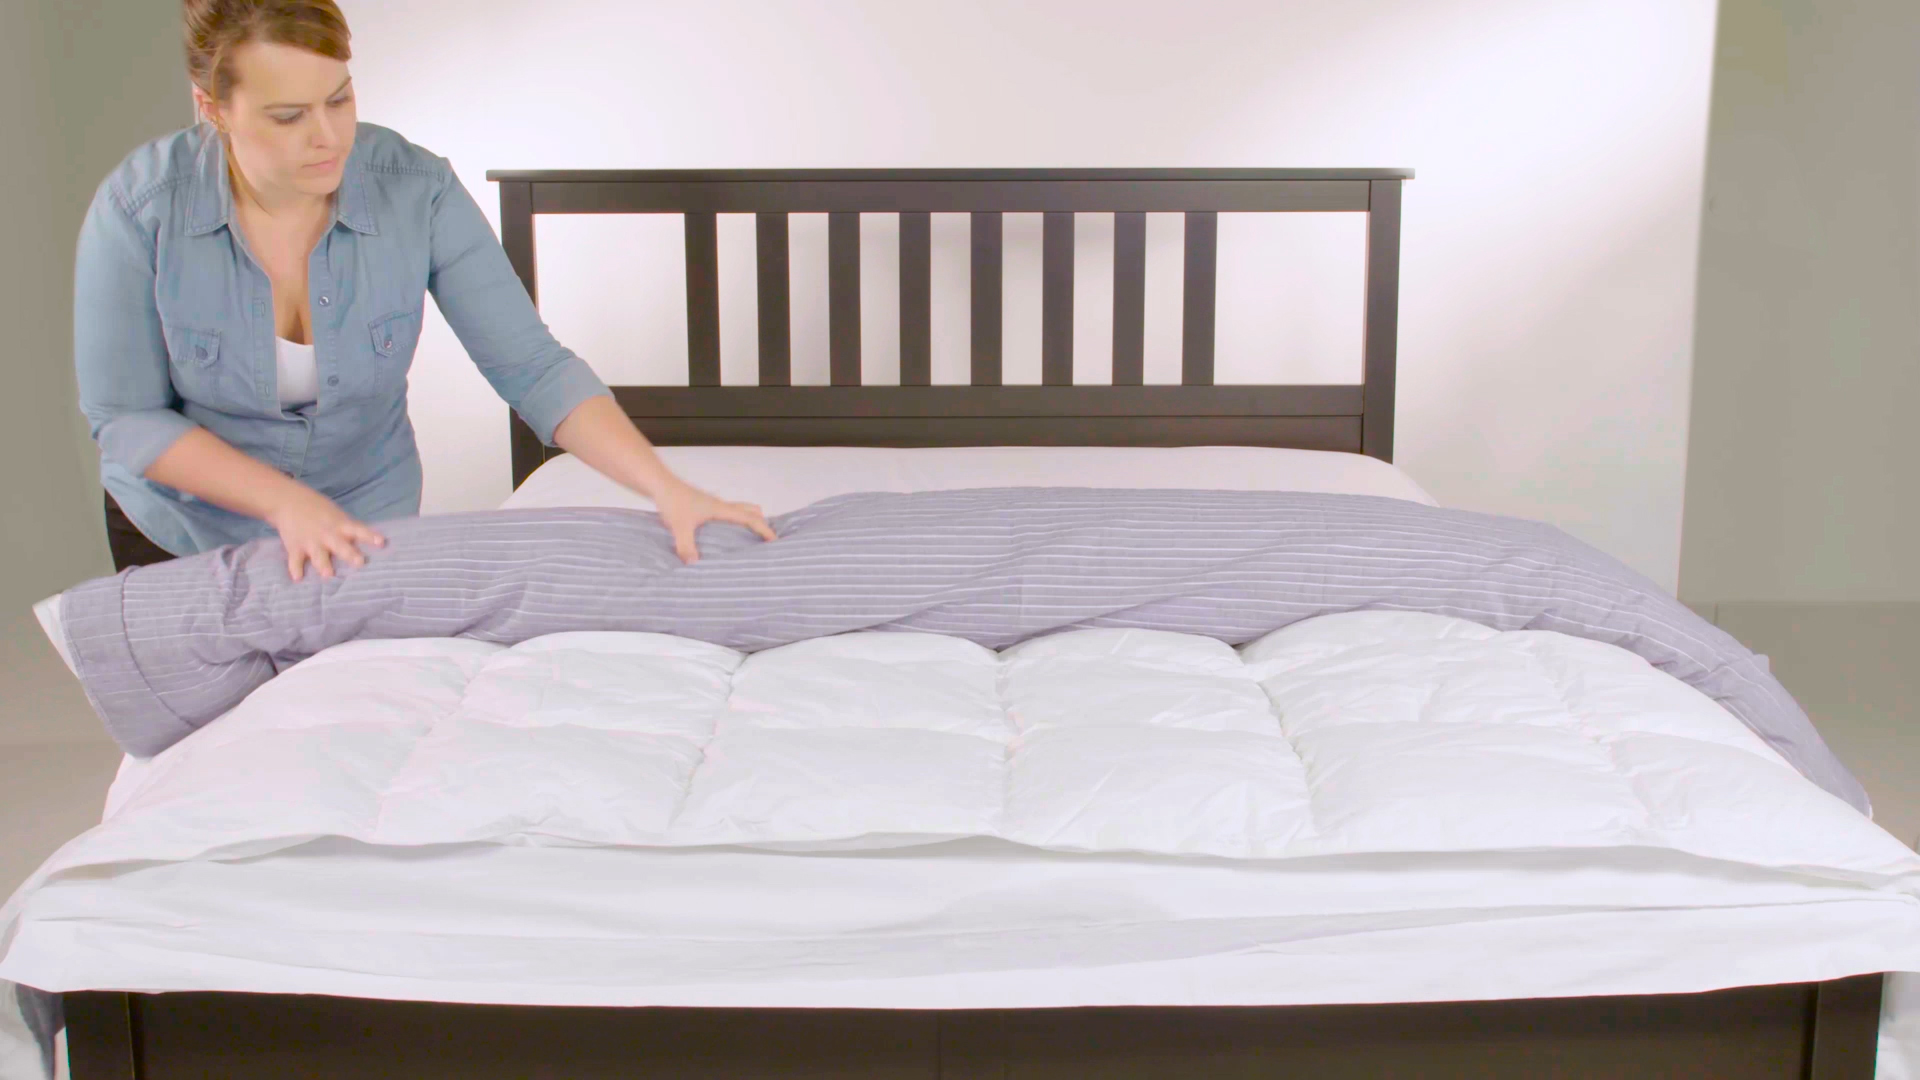 How to Put on a Duvet Cover